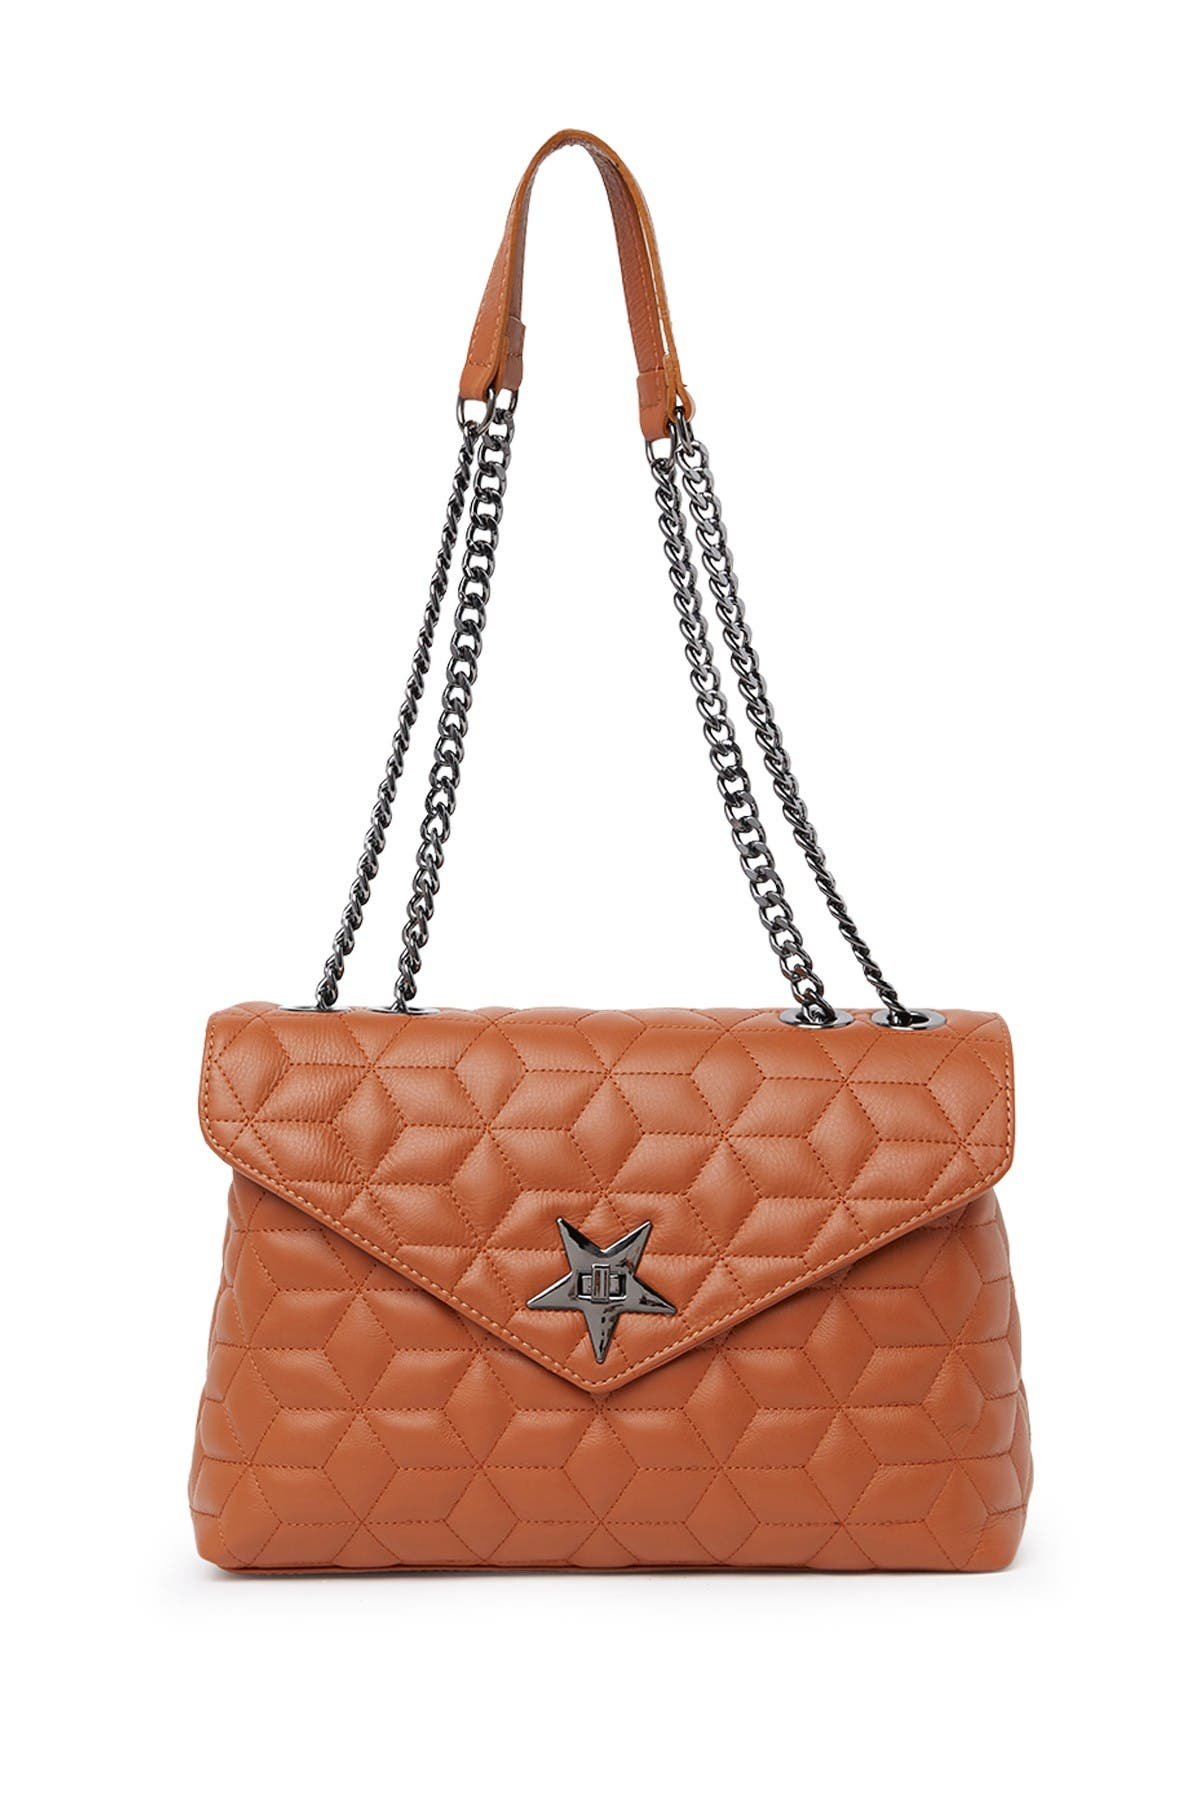 Image of Roberta M Quilted Shoulder Bag